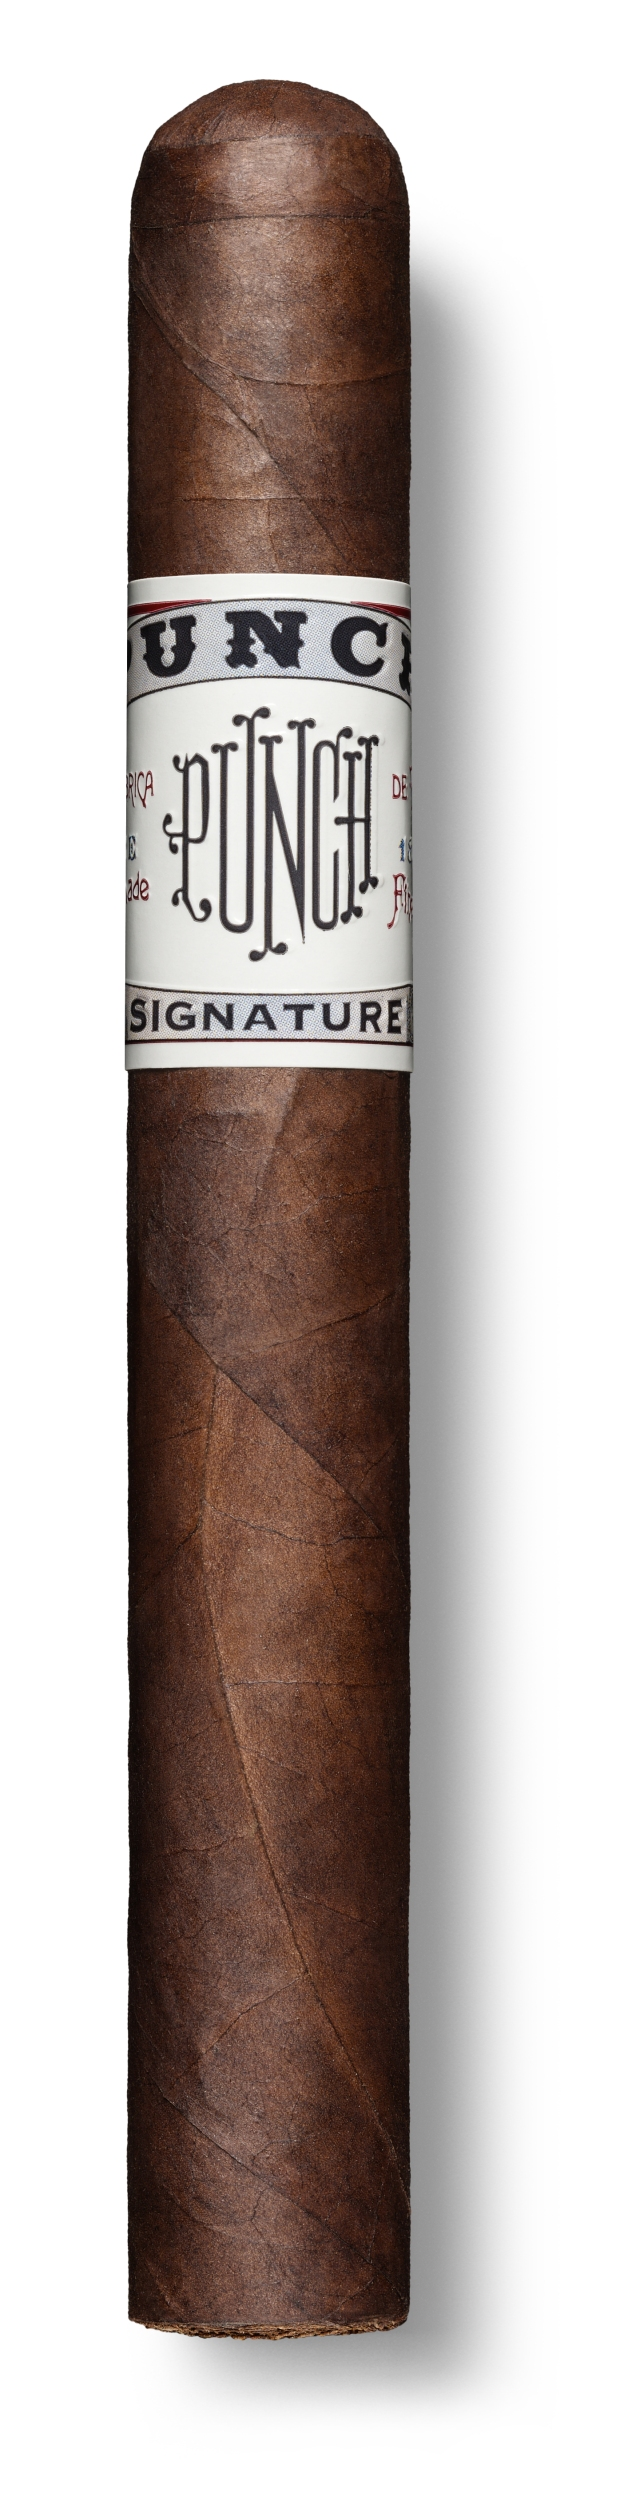 punch-signature_pita_cigar